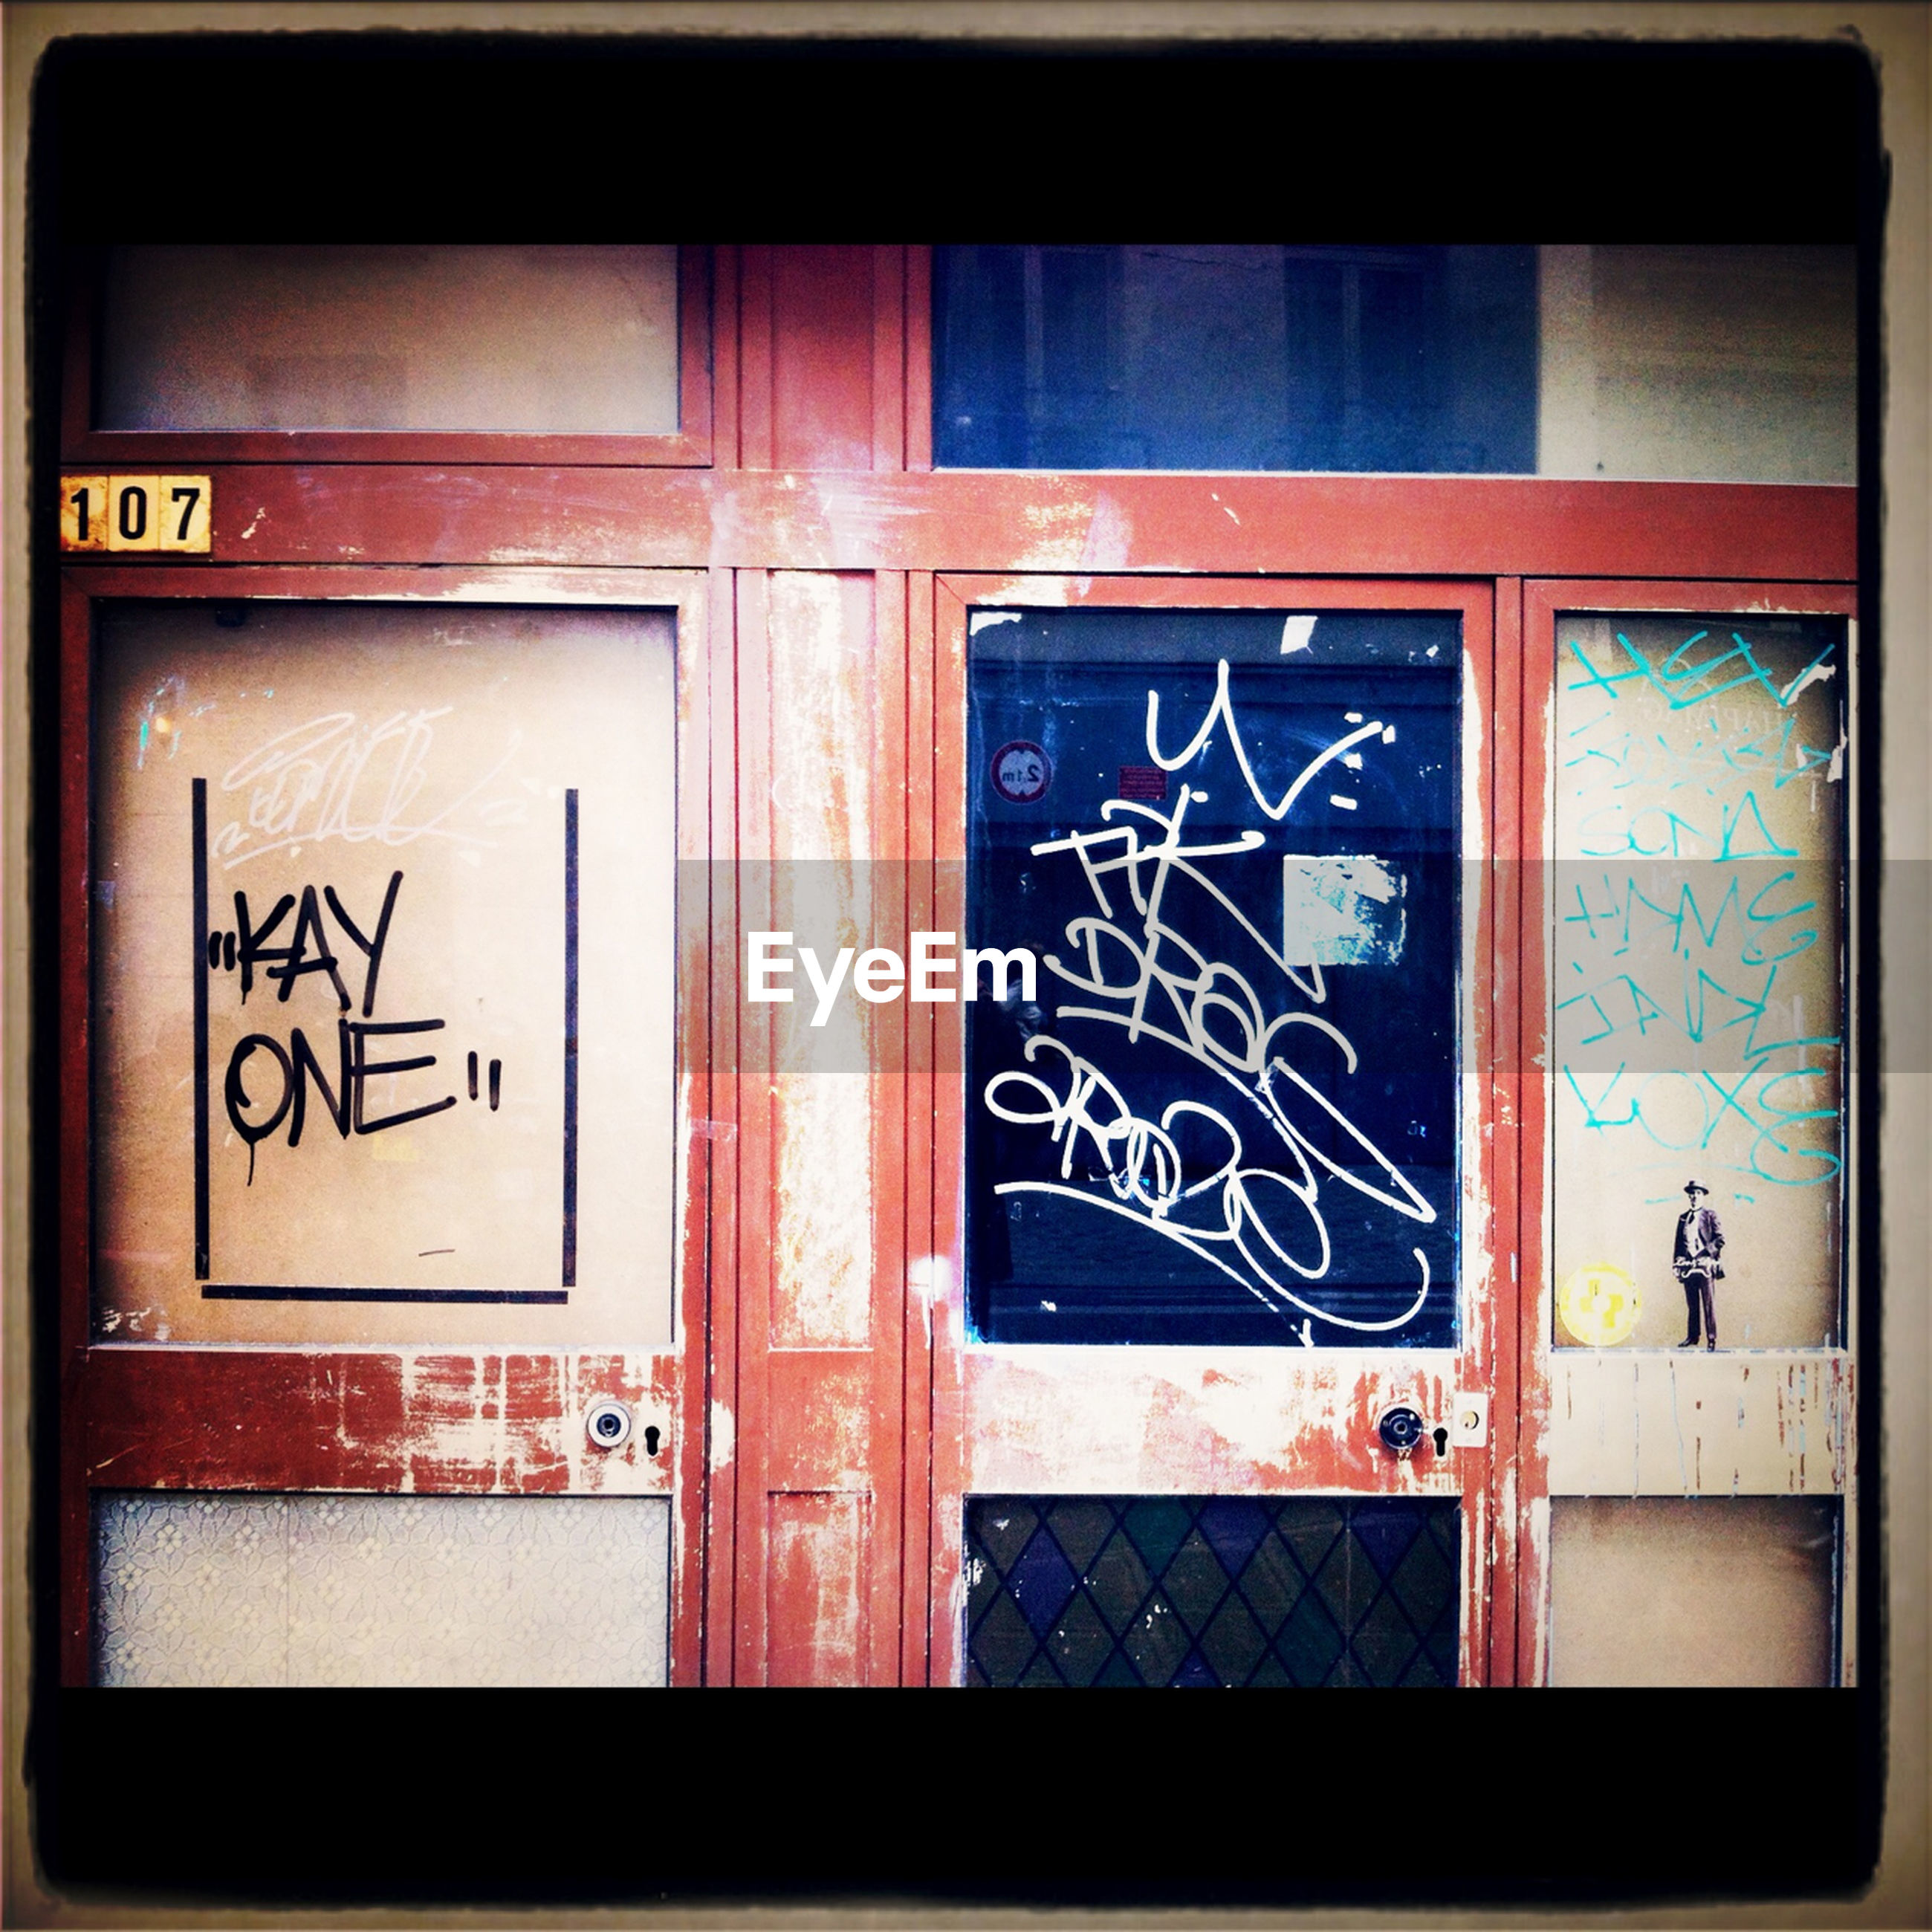 architecture, built structure, building exterior, door, closed, text, transfer print, graffiti, window, western script, wall - building feature, entrance, auto post production filter, communication, wall, safety, house, day, building, art